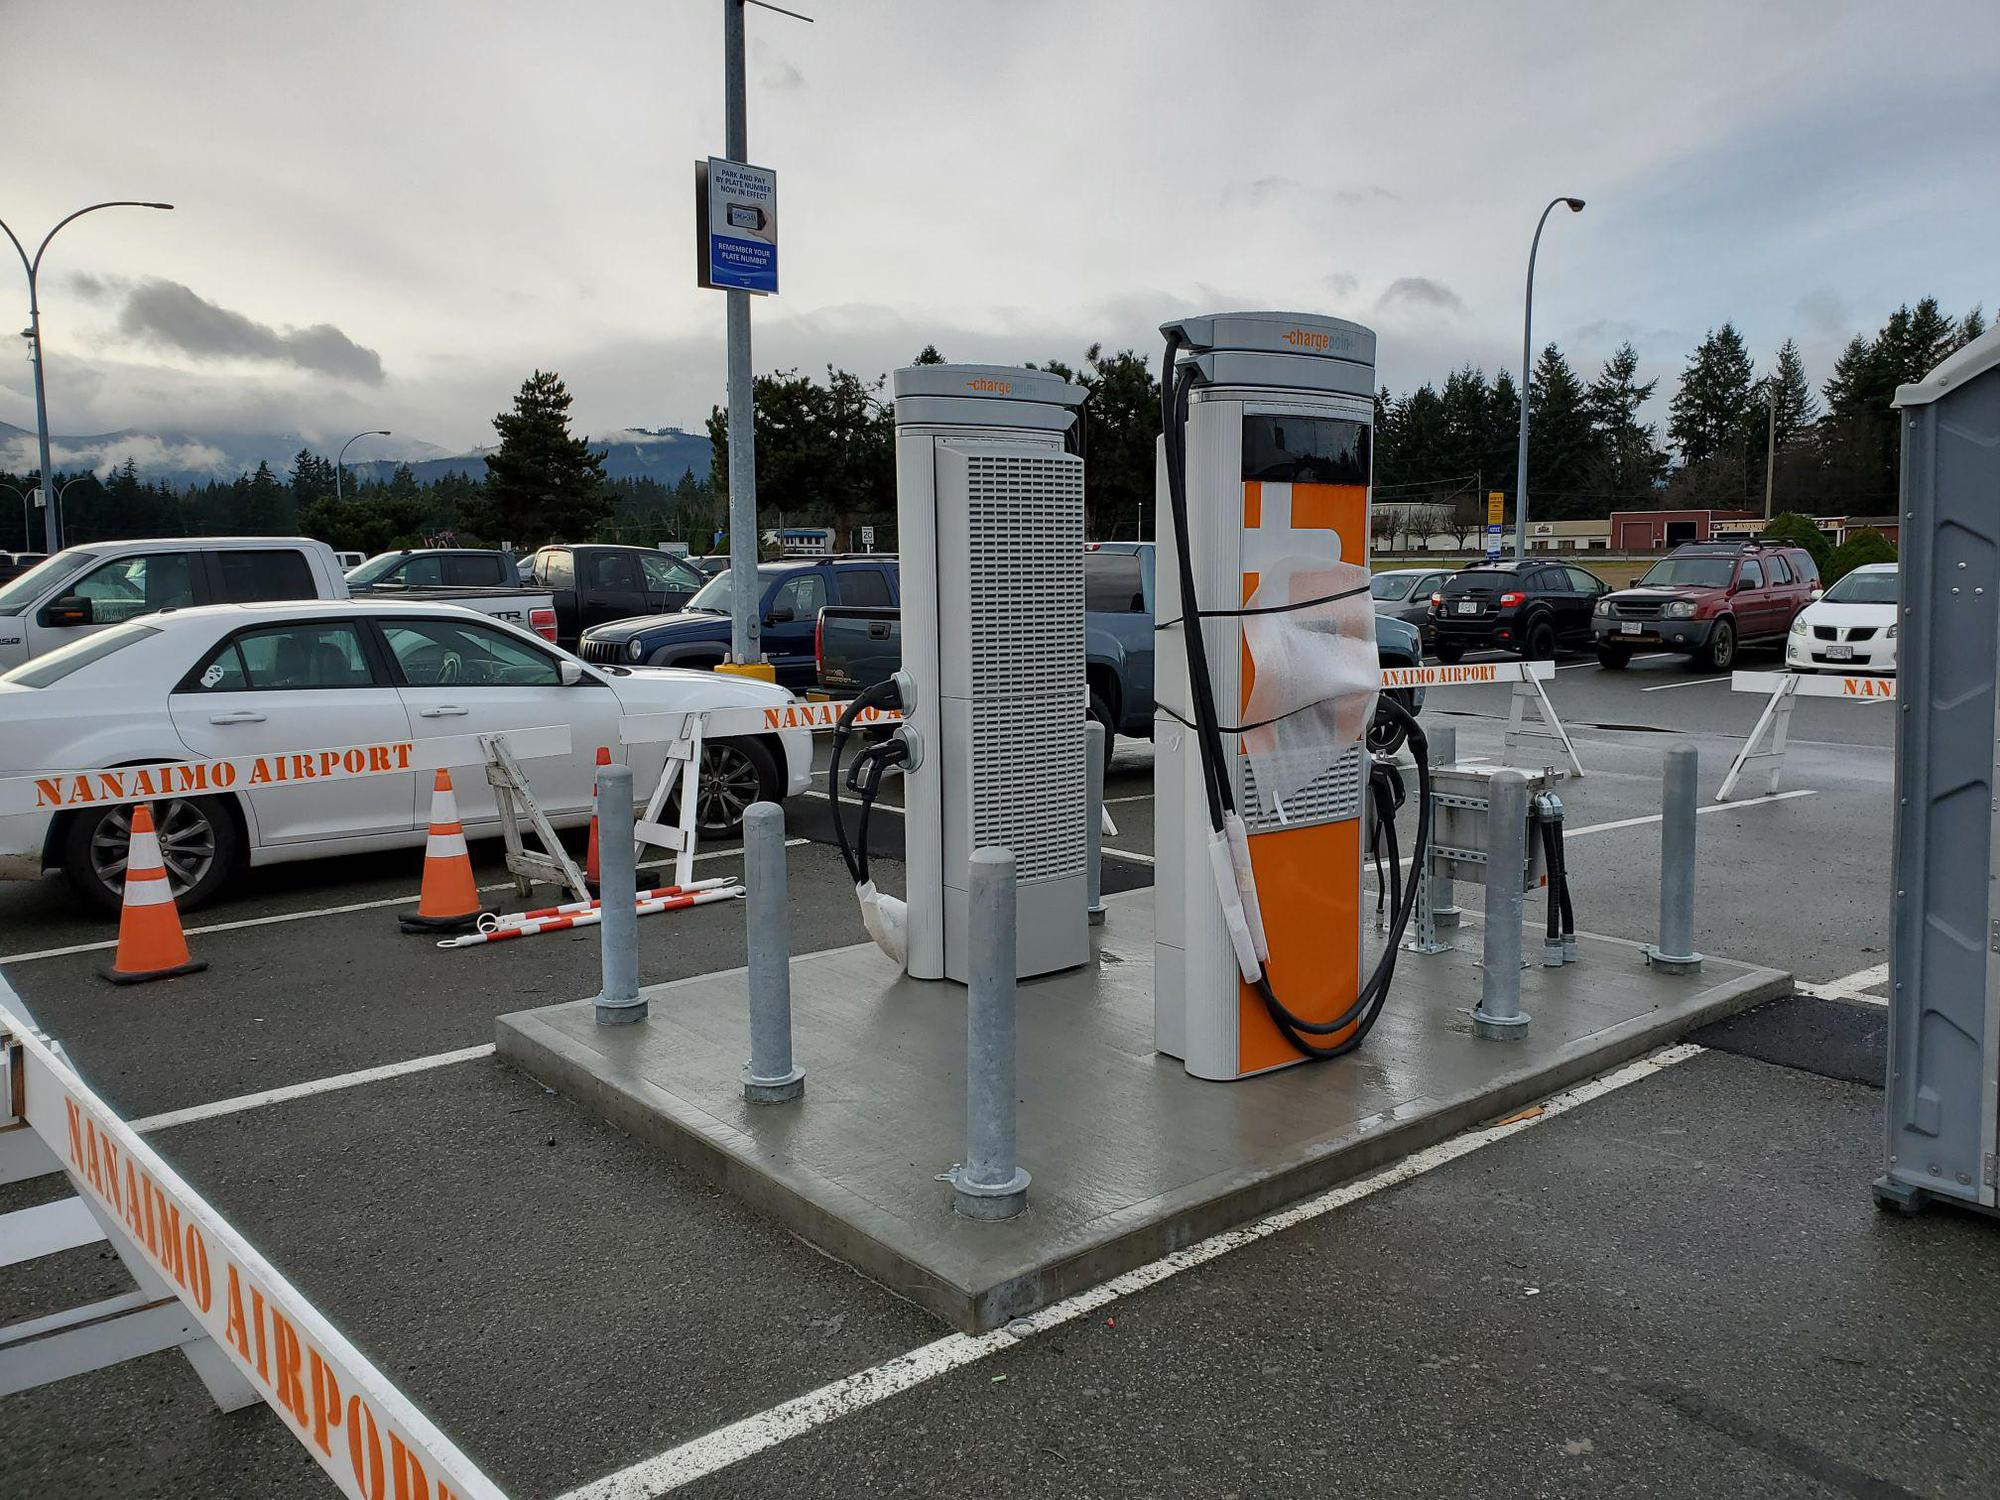 ChargePoint Nanaimo Airport south chargers